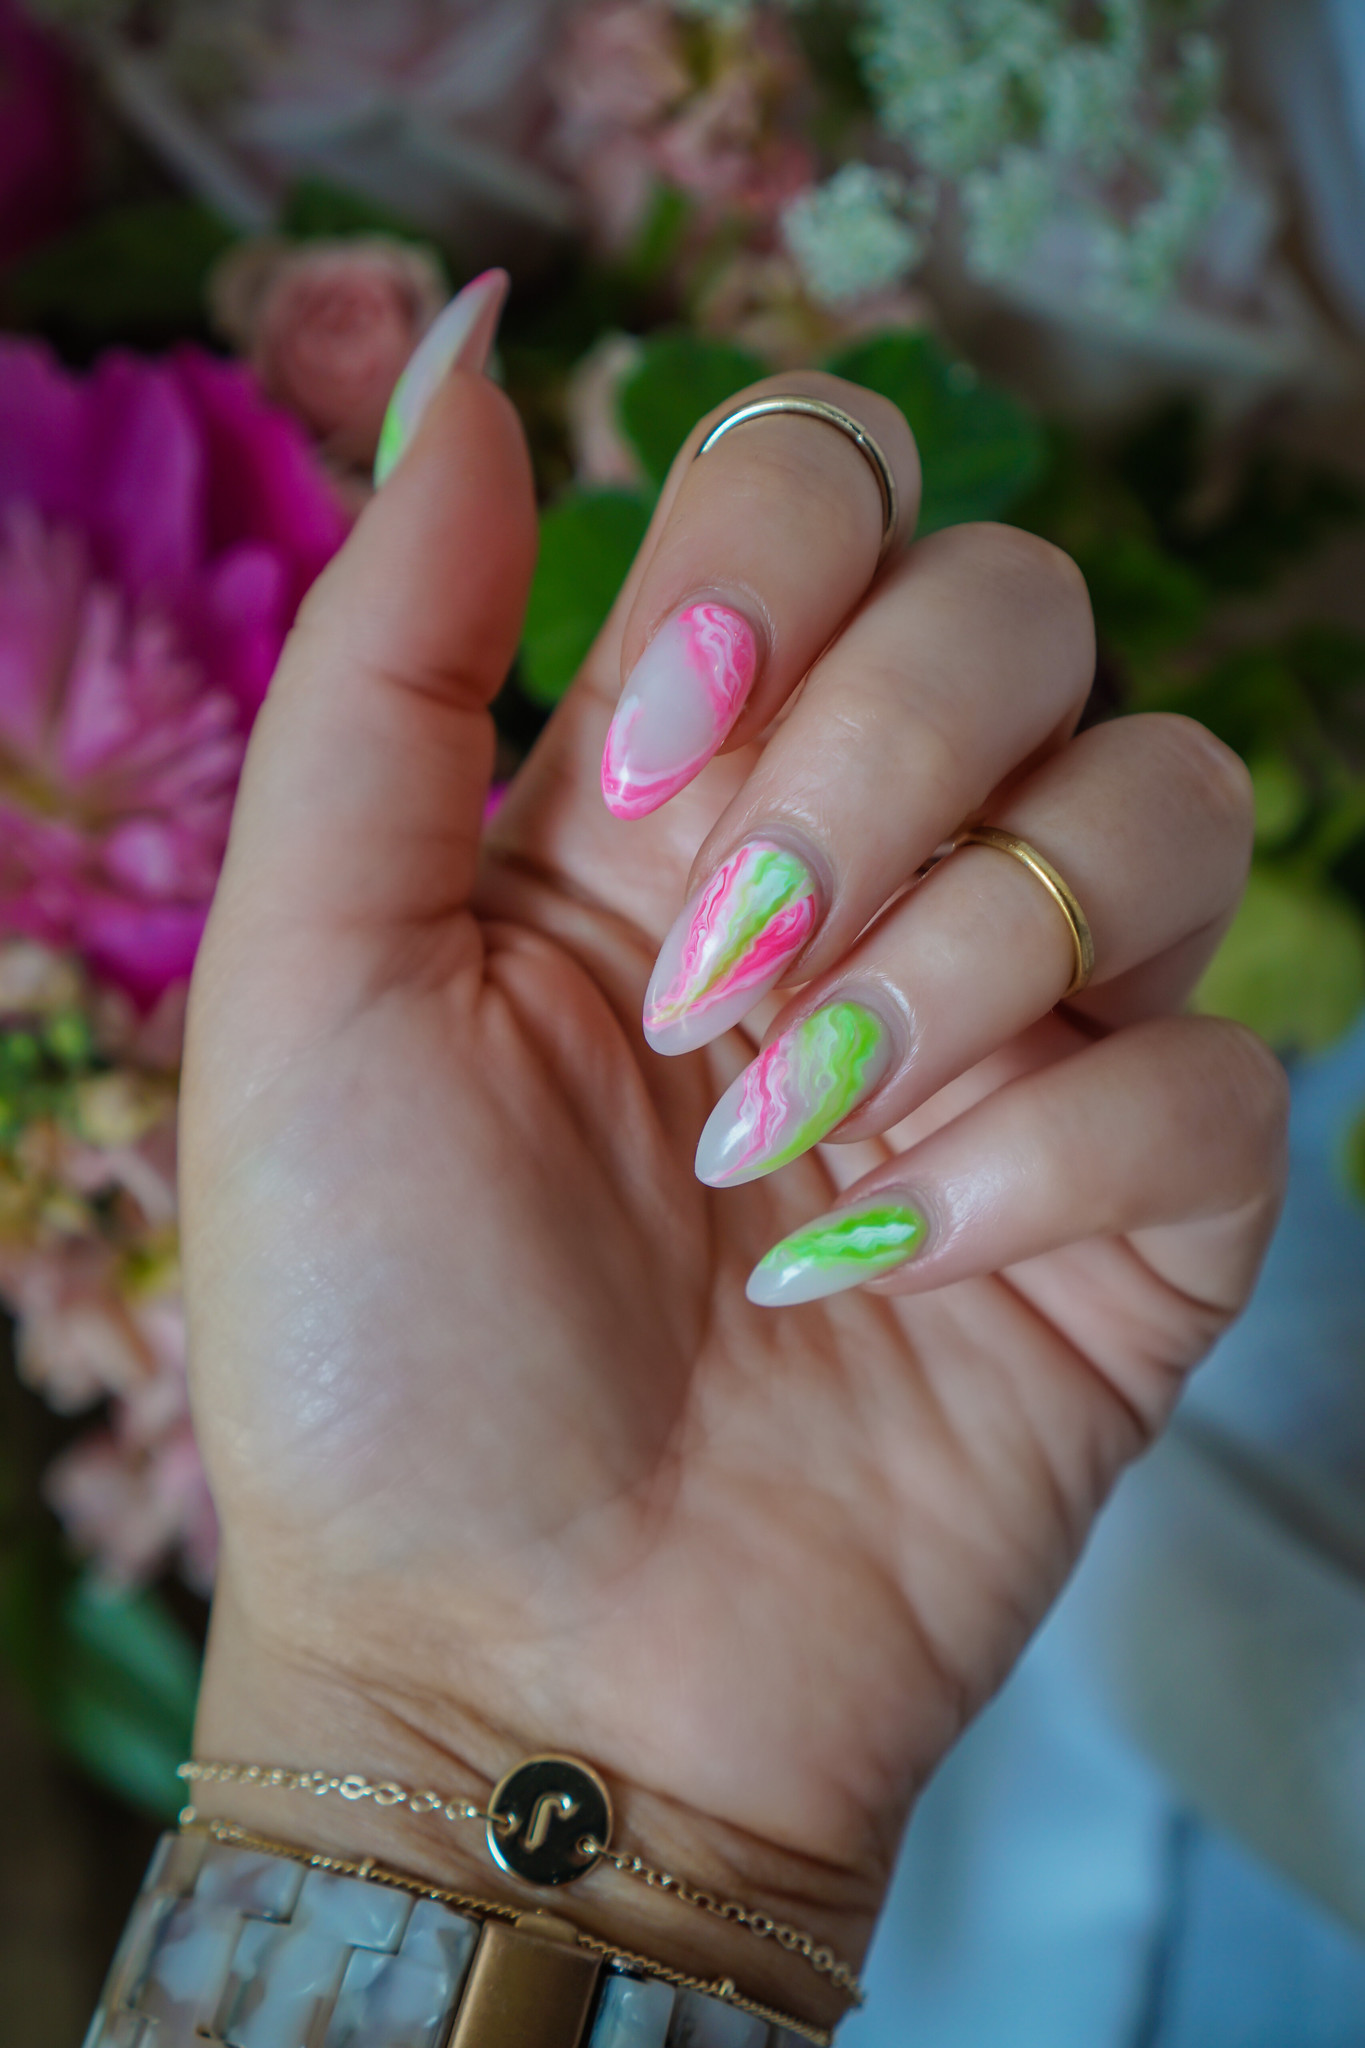 Pink & Green Marble Nails: Manicure of the Month   Summer Nails   Vacation Nails   Manicure Ideas   2021 Nail Ideas   Nail Art   Almond Nails   Acrylic Nails   Neon Nails   Acrylic Nails